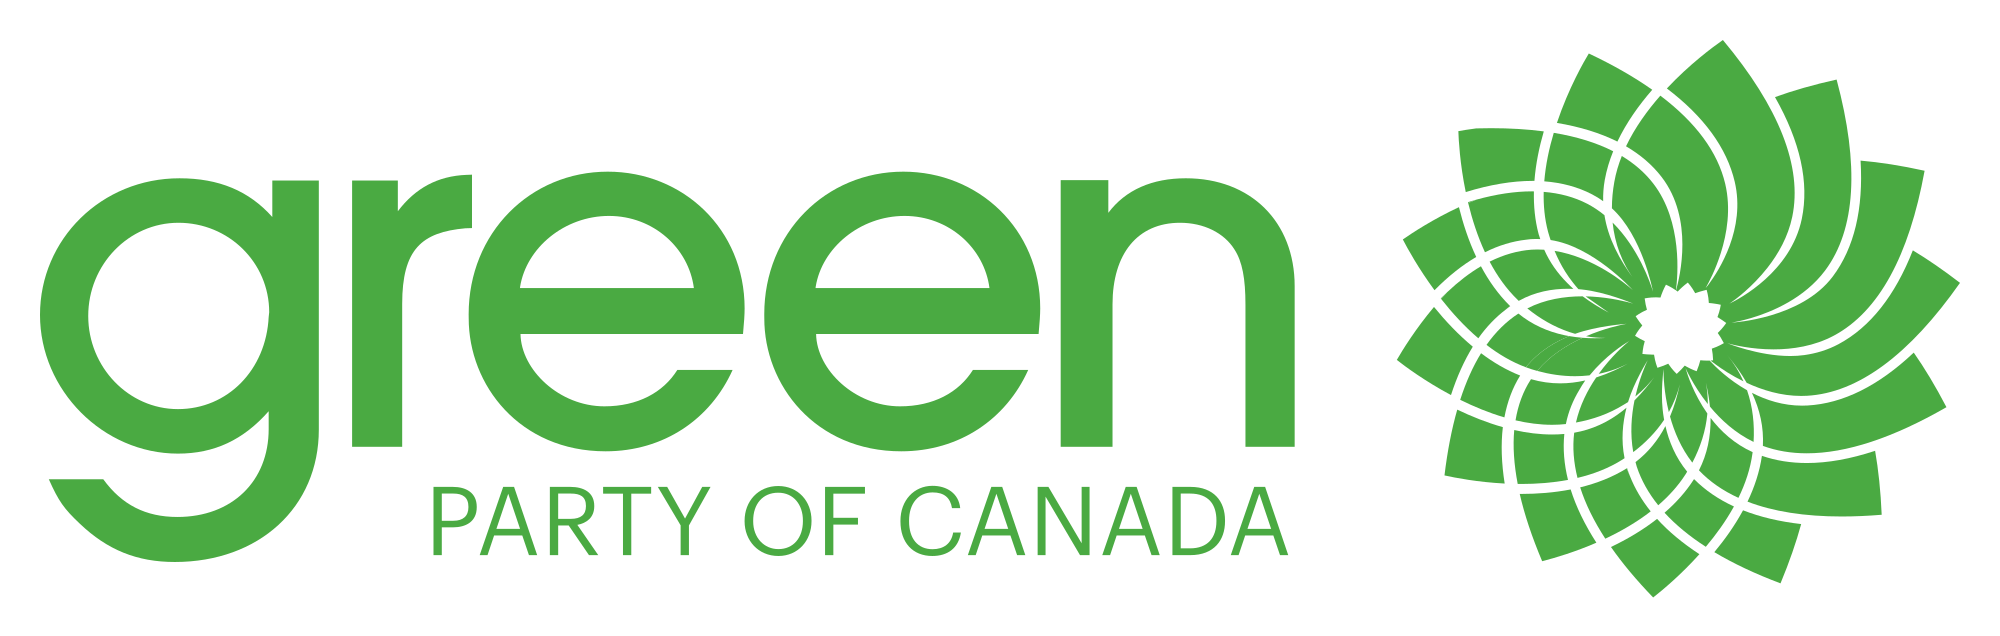 Green party logo png. File of canada svg